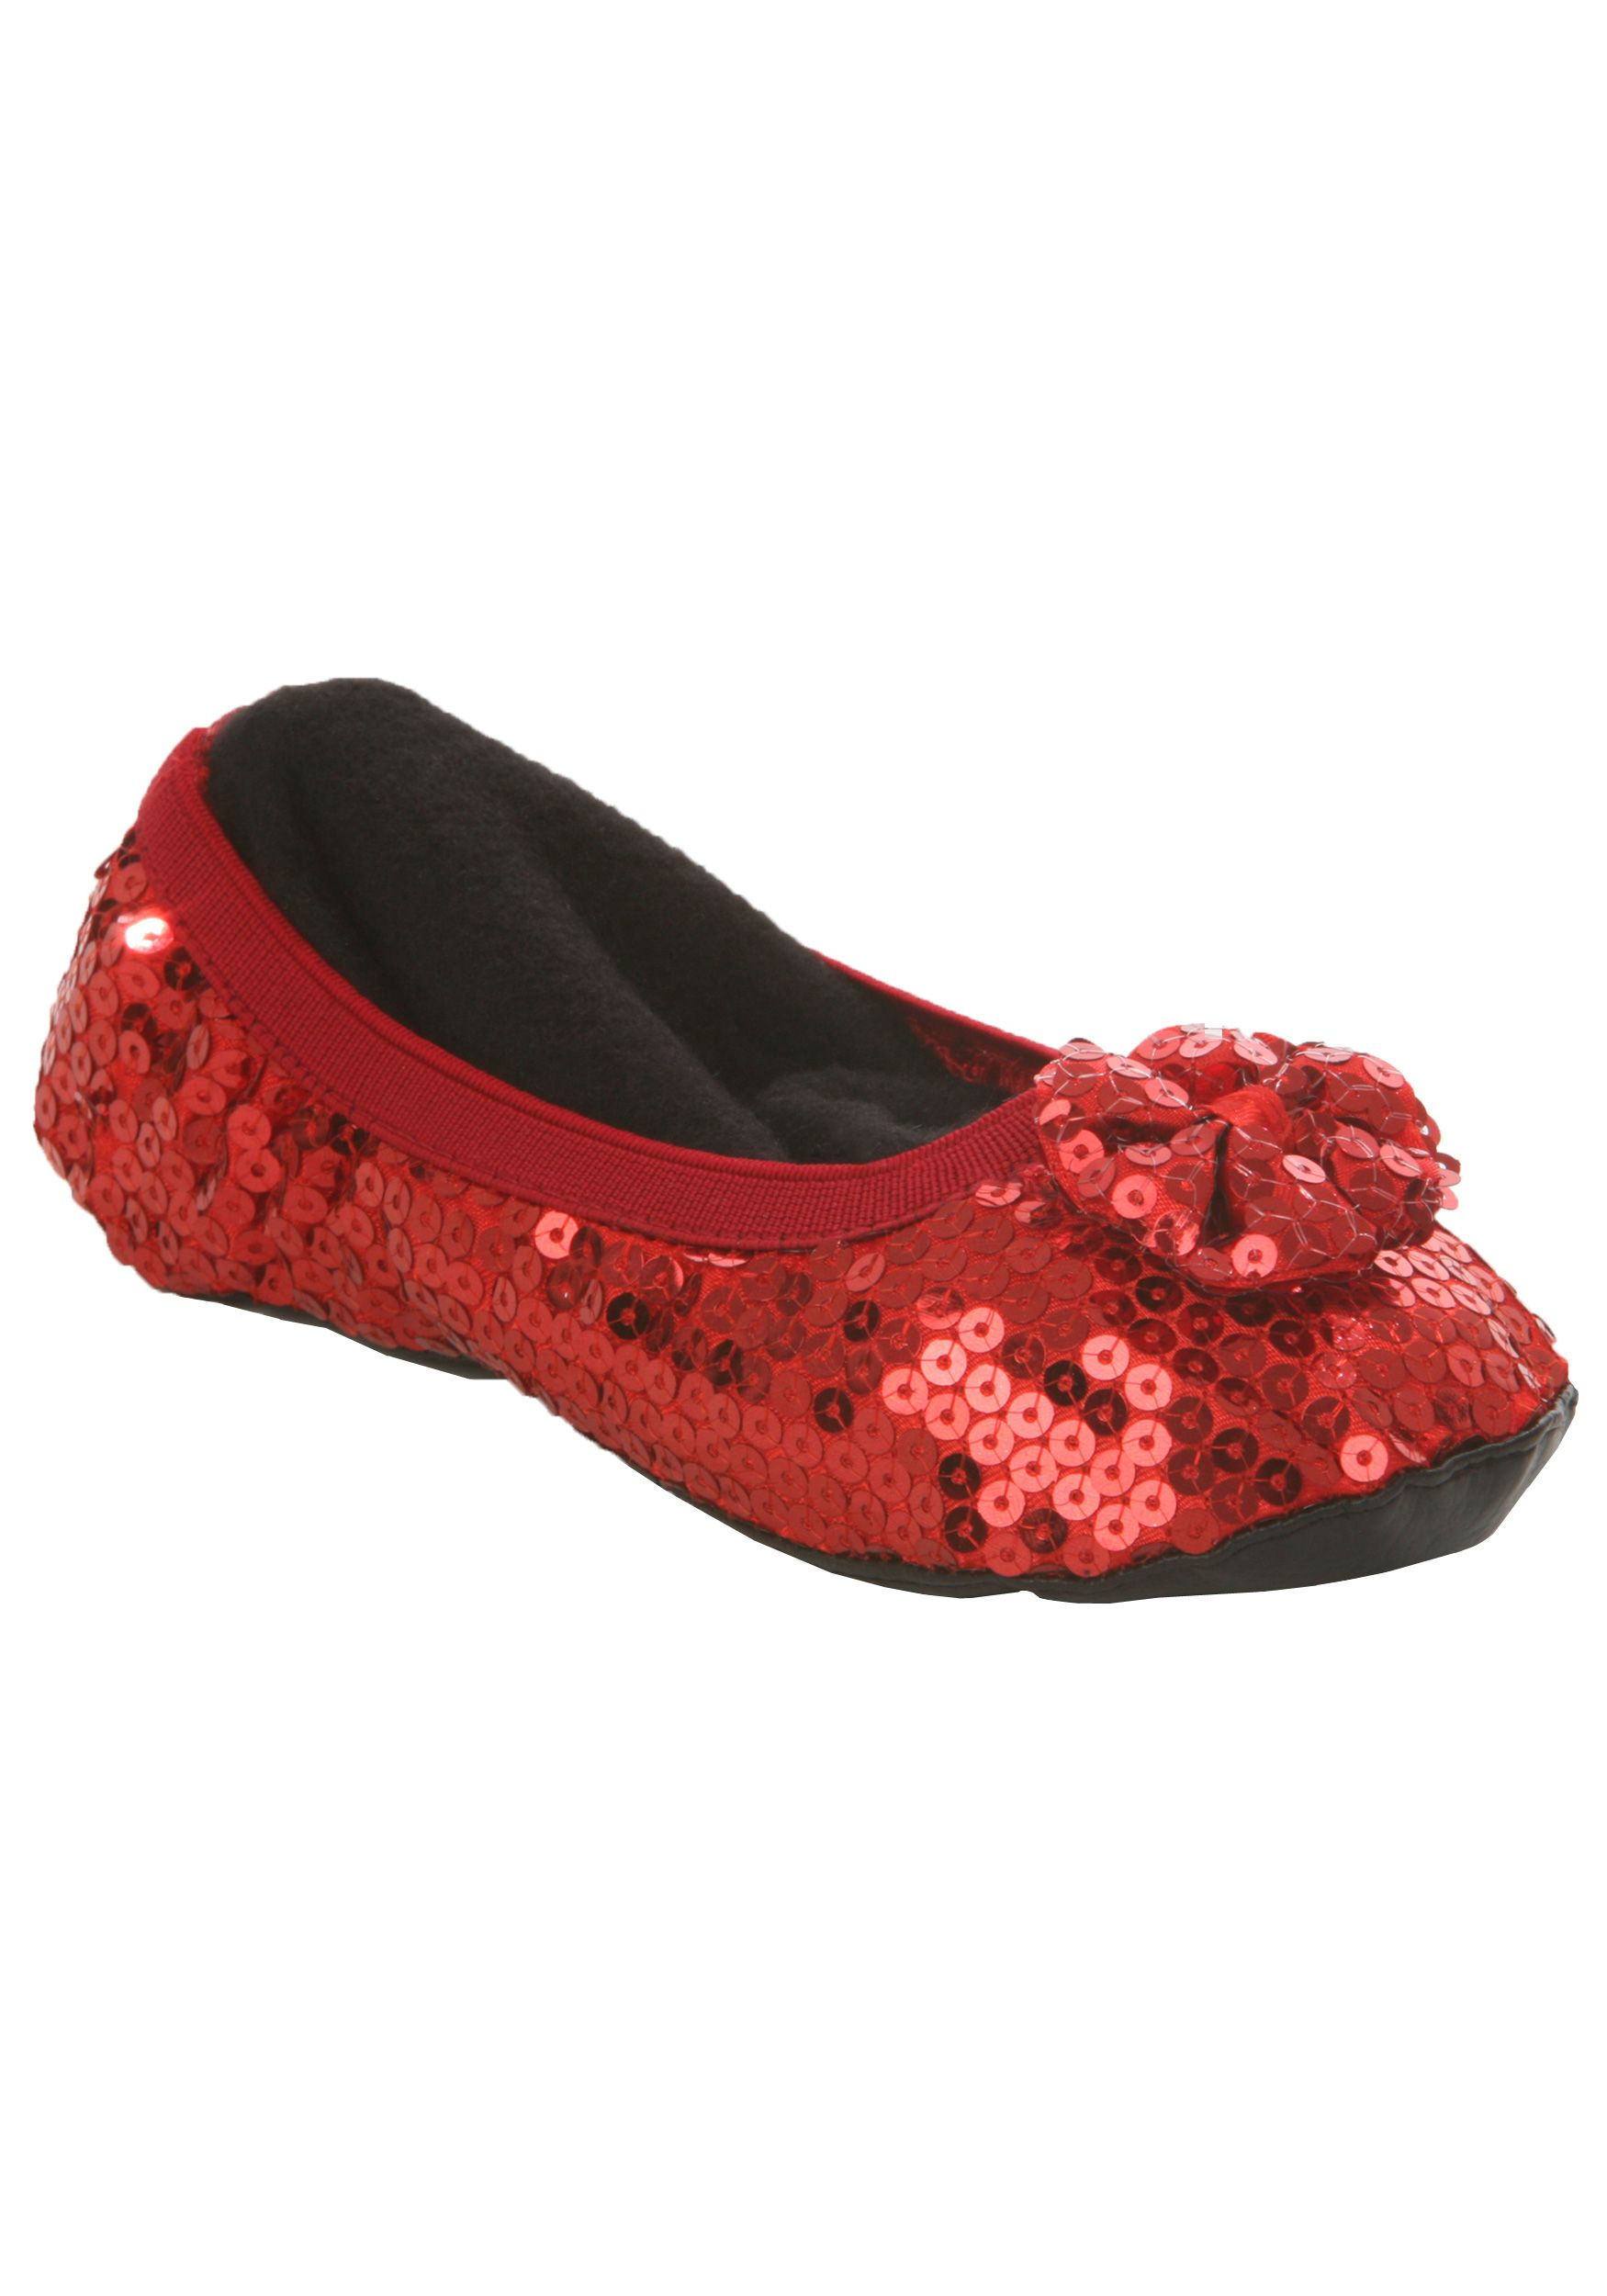 Child Ruby Slippers Kids Dorothy Ruby Red Shoes Slippers For Girls Red Slippers Ruby Red Slippers